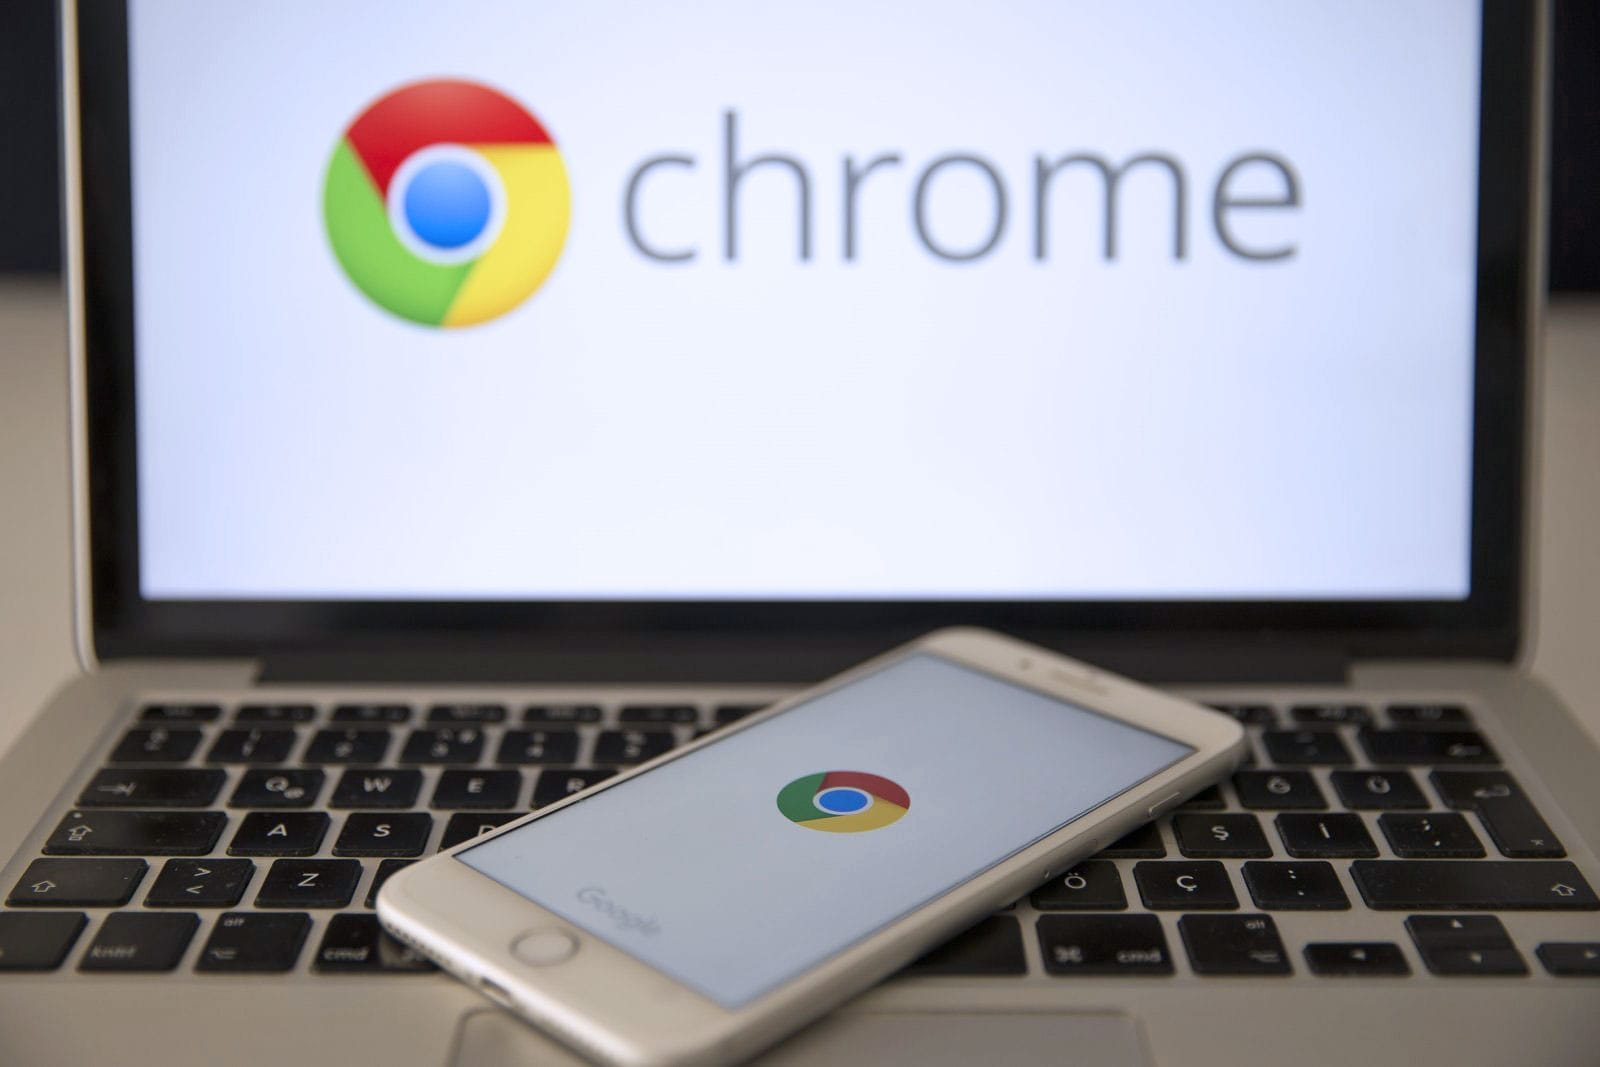 Chrome may stop websites from hijacking your browser's back button